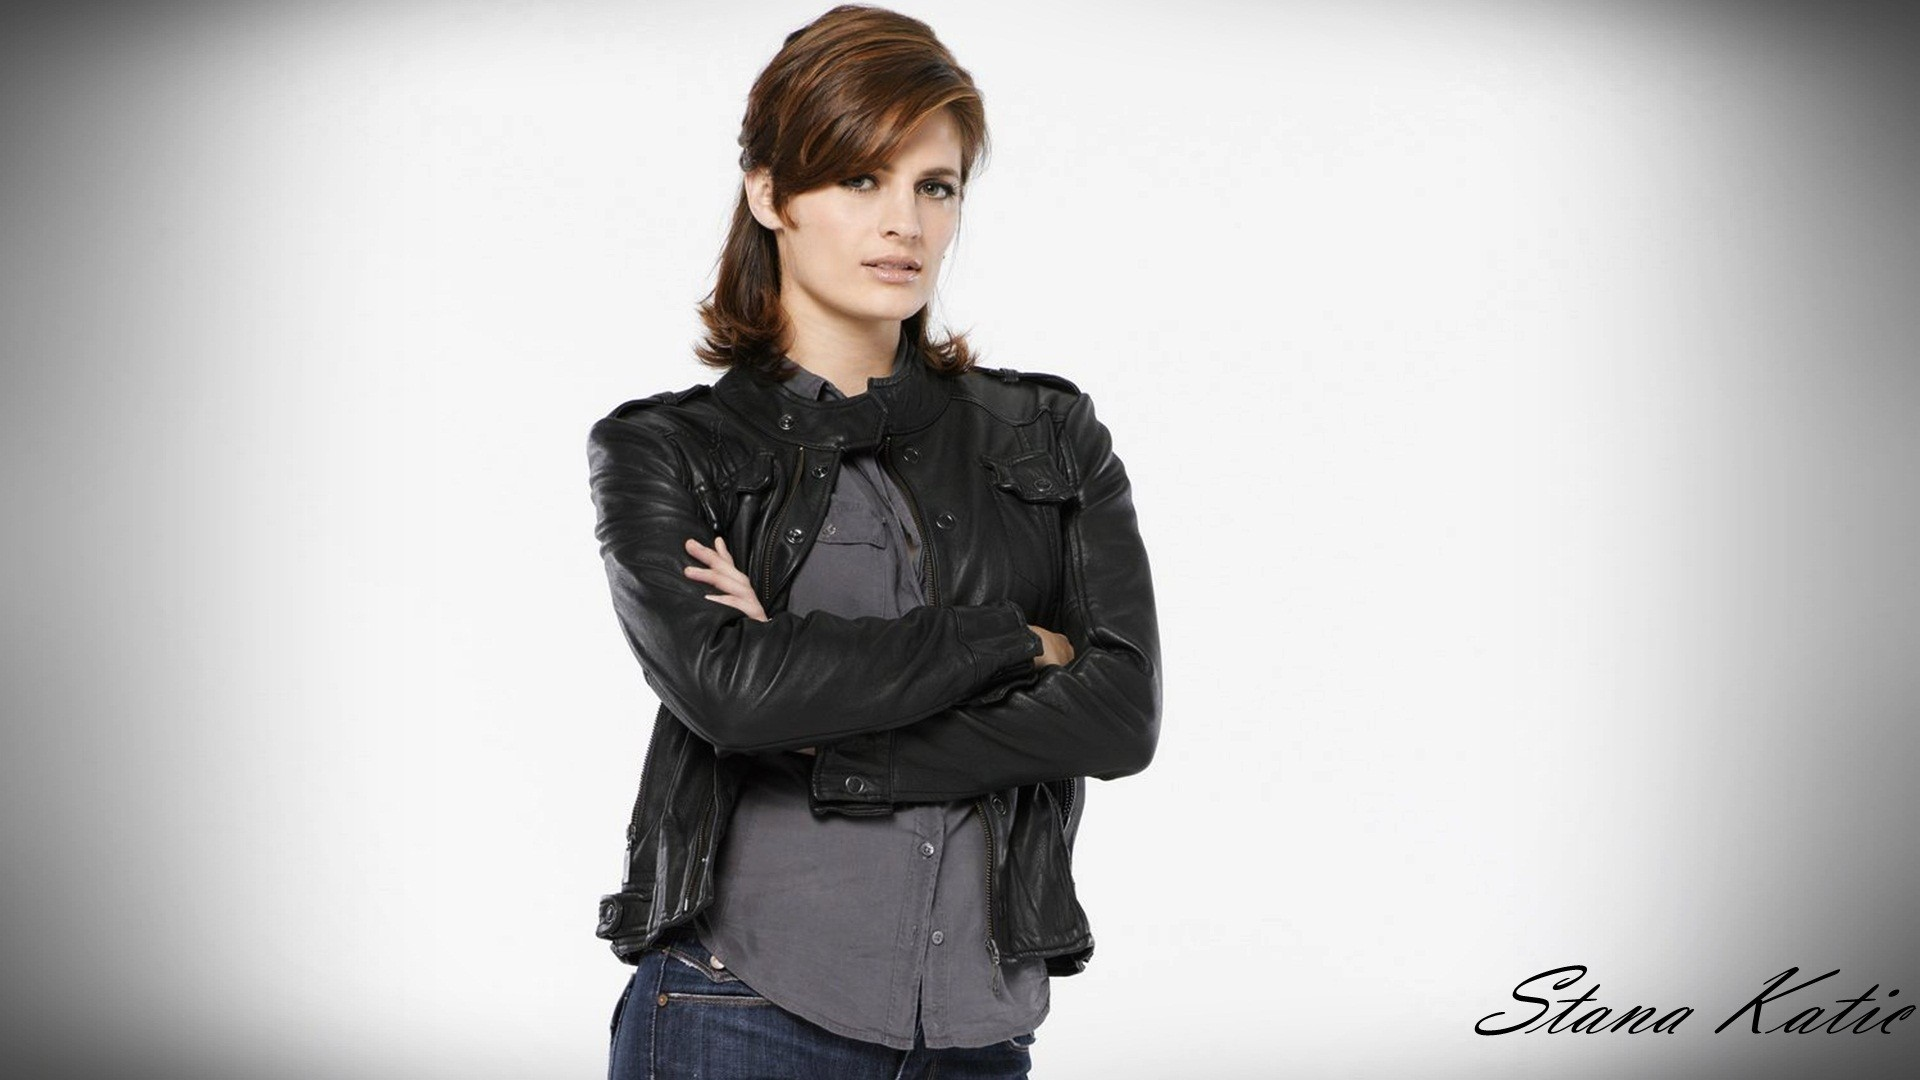 1920x1080 Beautiful Acterss Stana Katic HD Wallpaper